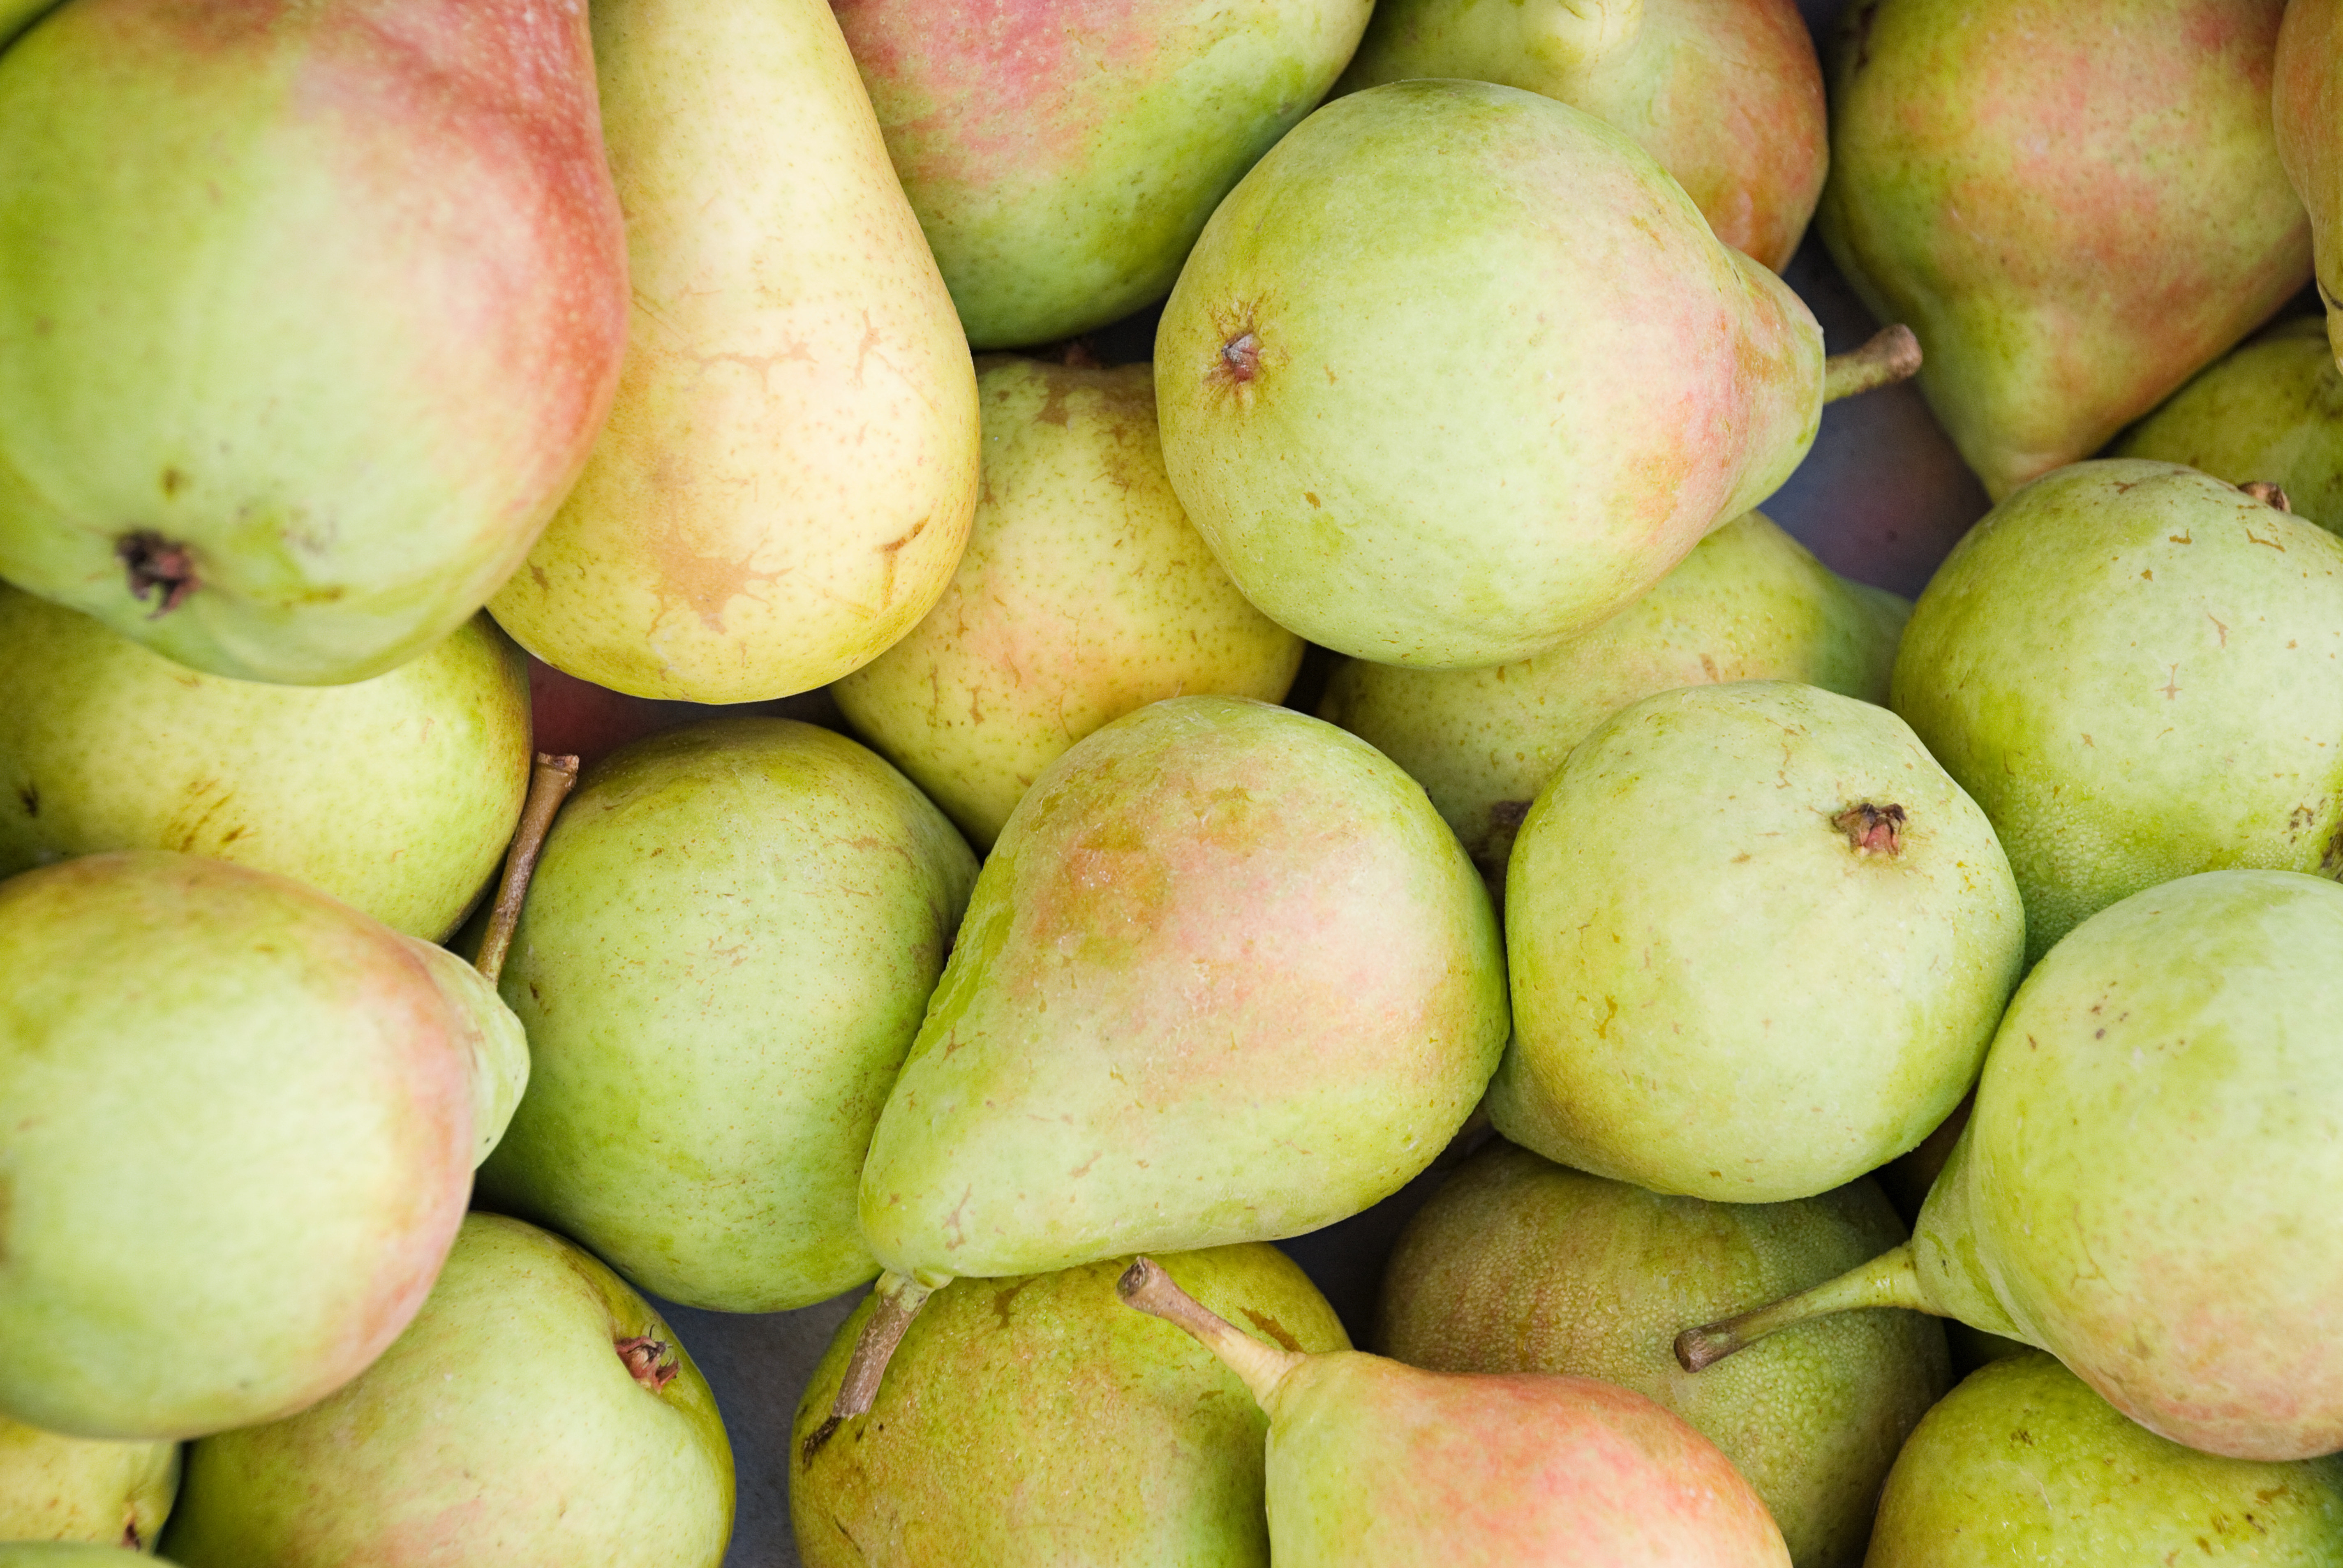 Early-season pears, which should be eaten when they're soft to the touch, really pop in flavor this time of year.